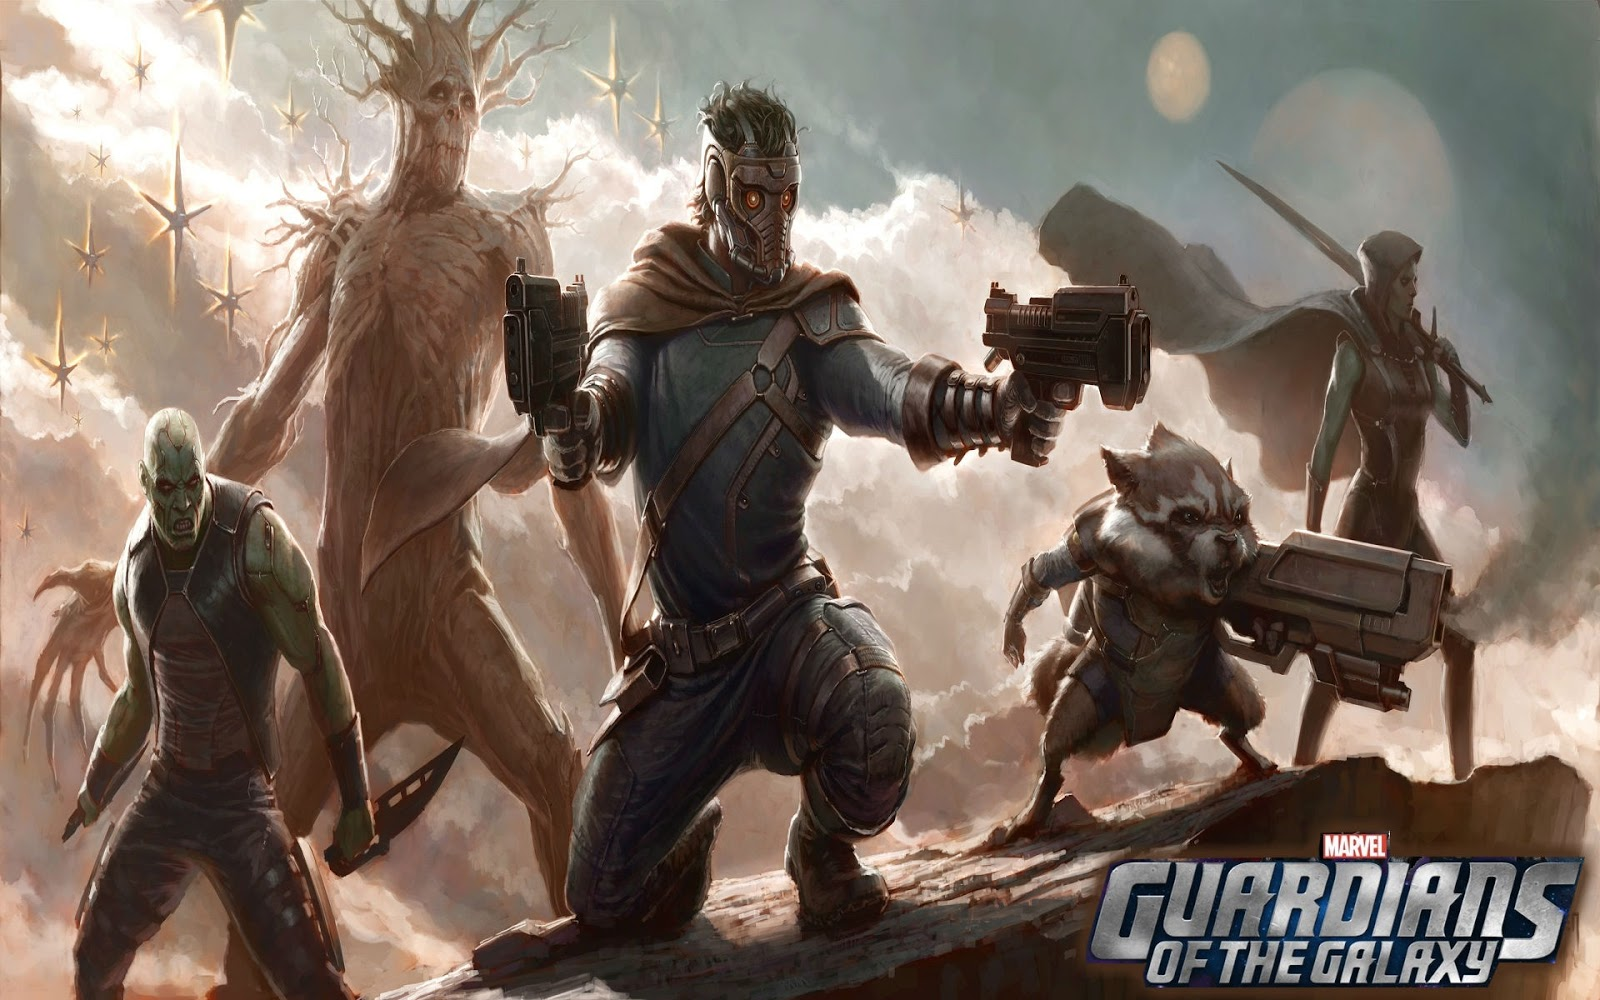 Simple Wallpaper Marvel Guardians The Galaxy - Guardians%2Bof%2Bthe%2BGalaxy%2BSuperheroes%2BHD%2BWallpapers  Perfect Image Reference_129112.jpg